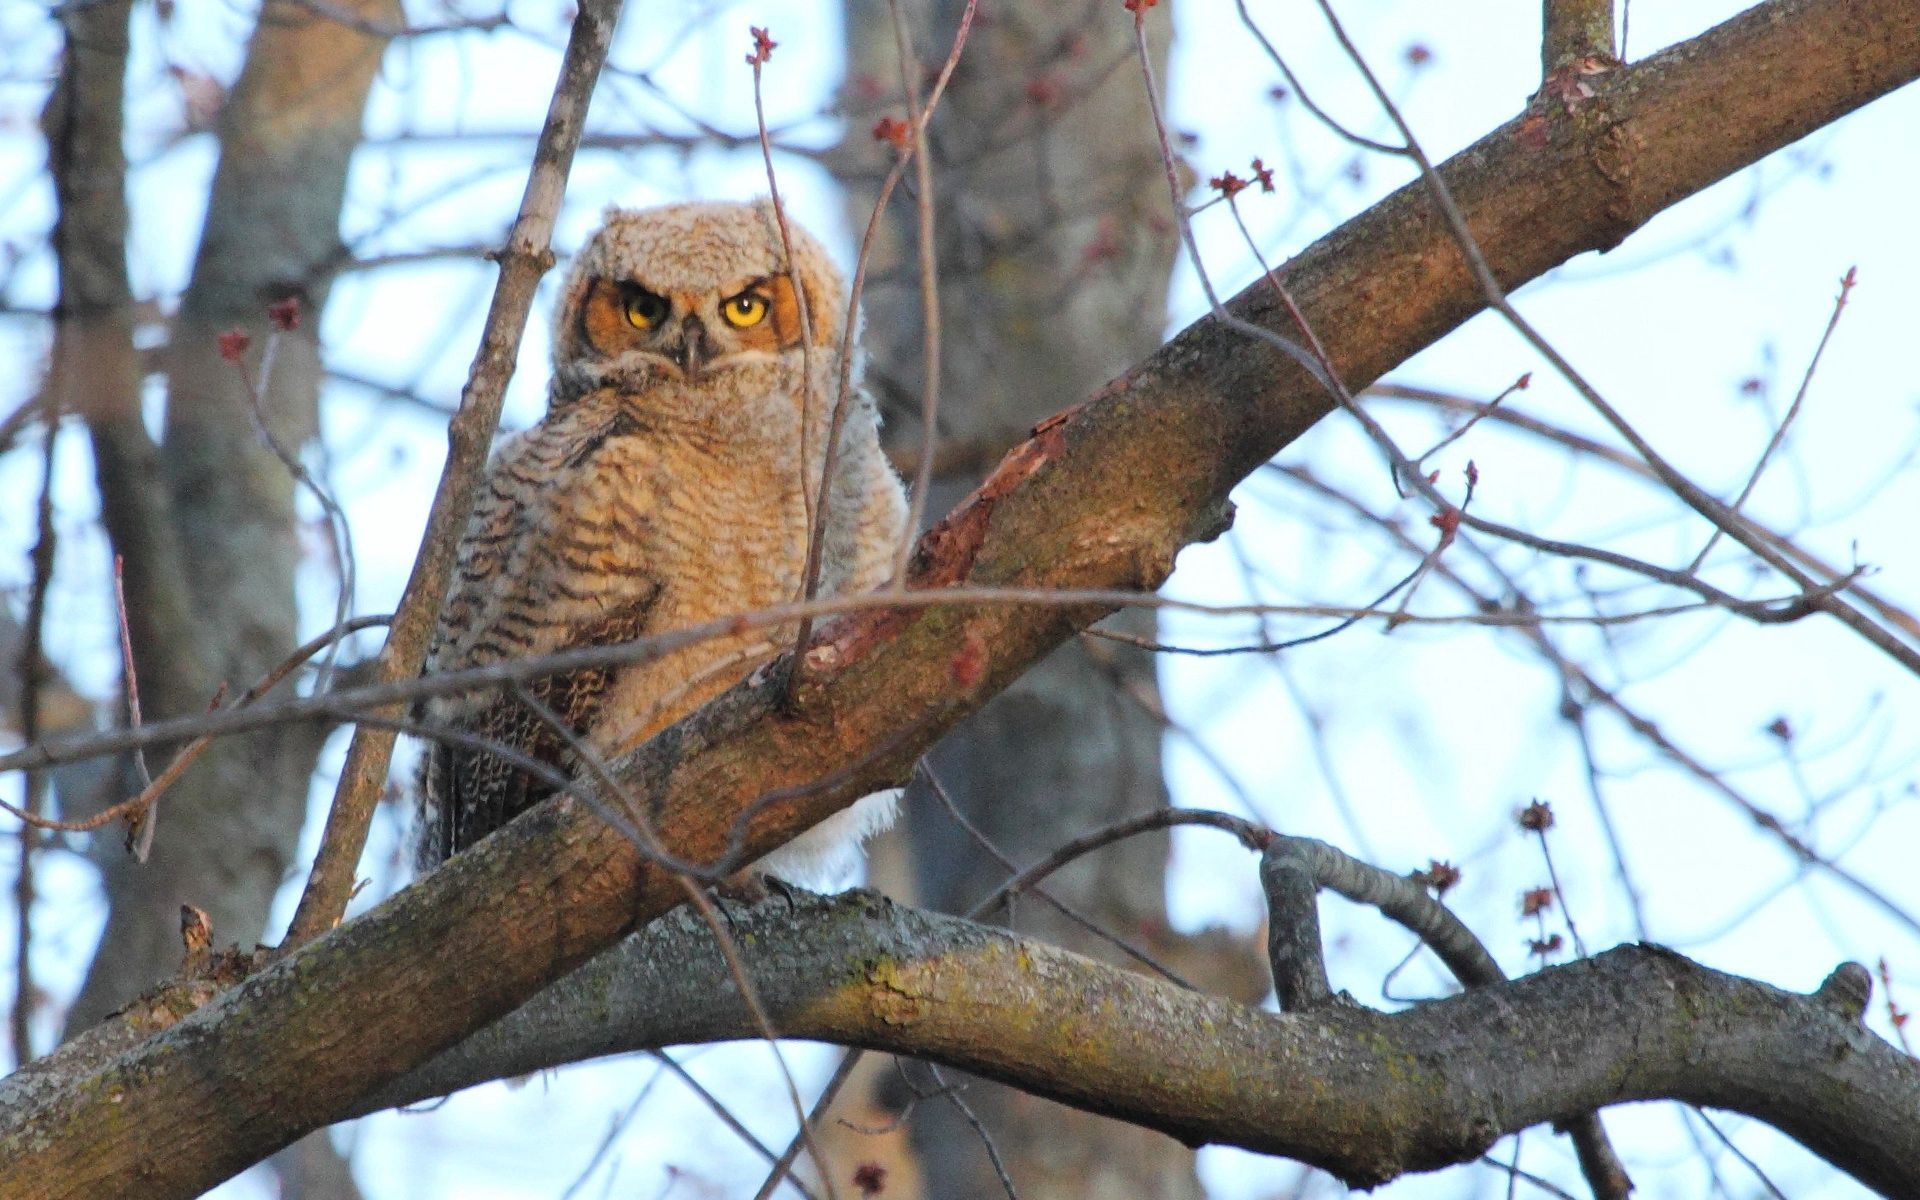 142412 download wallpaper Animals, Owl, Wood, Tree, Bird, Predator screensavers and pictures for free